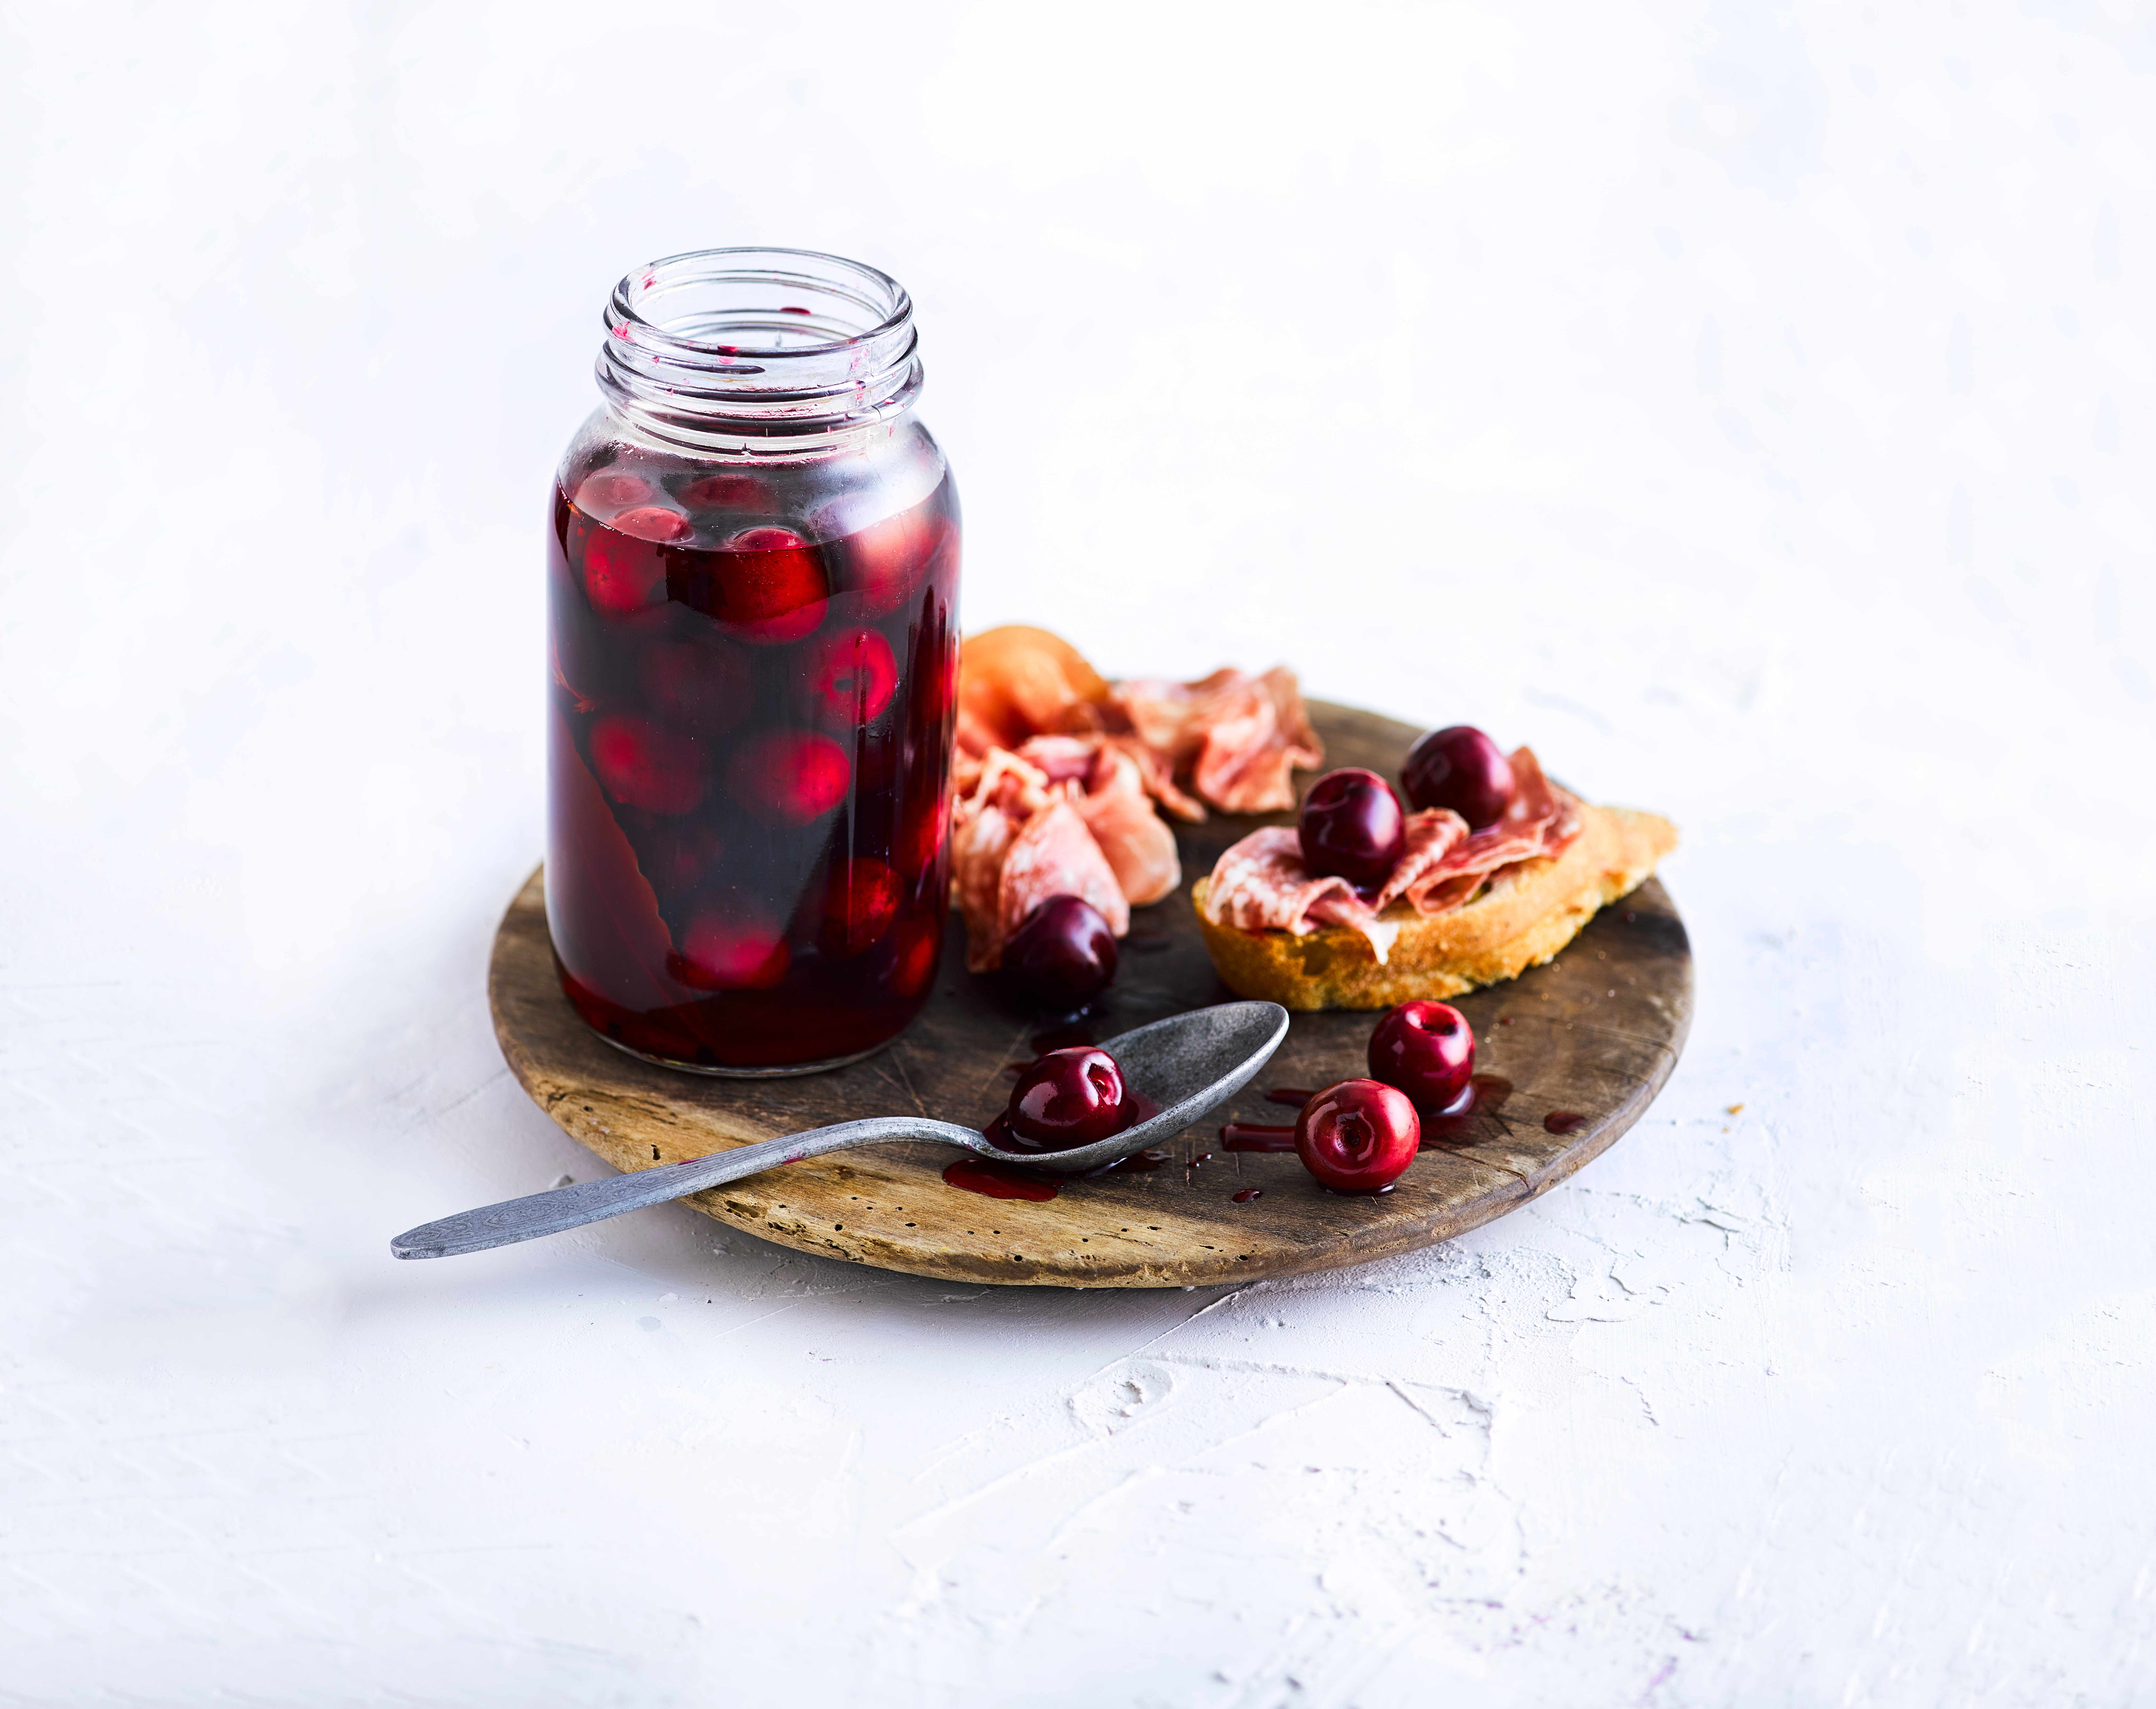 Pickled Cherries in a kilner jar served on a wooden board with ham and bread